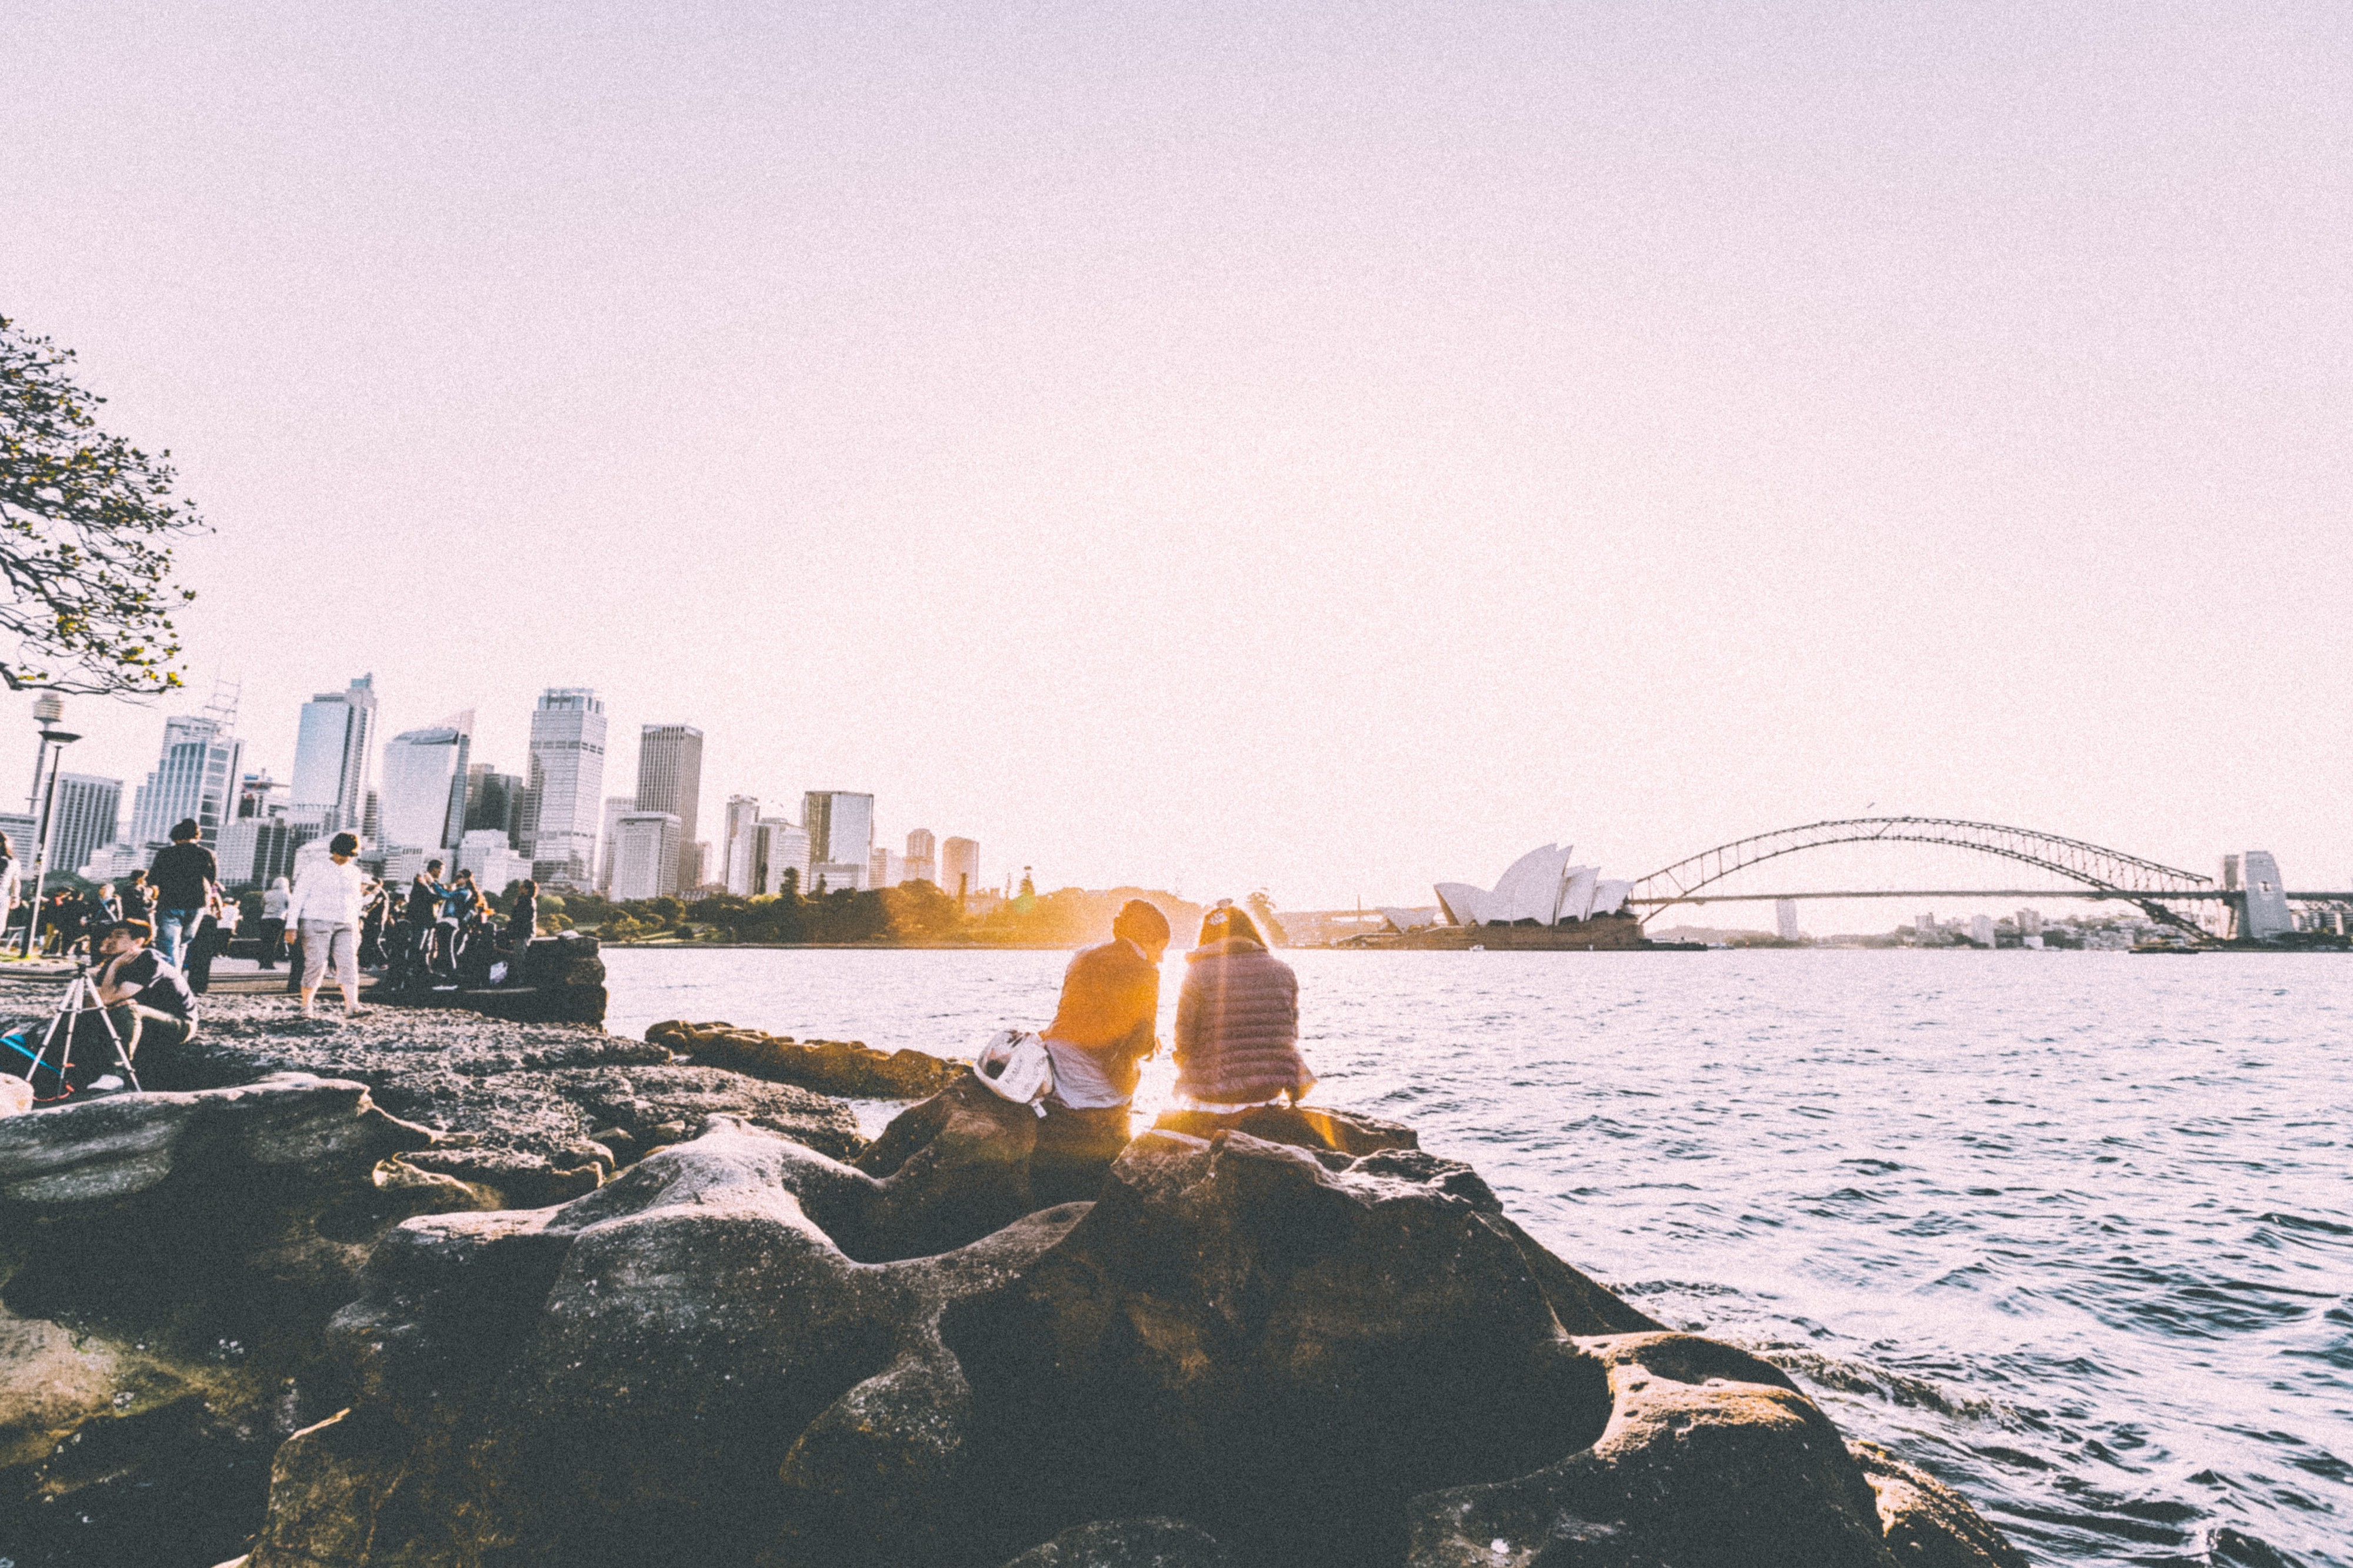 Coastal view of the Sydney Central Business District, the Opera House and the Harbor Bridge. People are seated on the rocks looking out at the harbor.